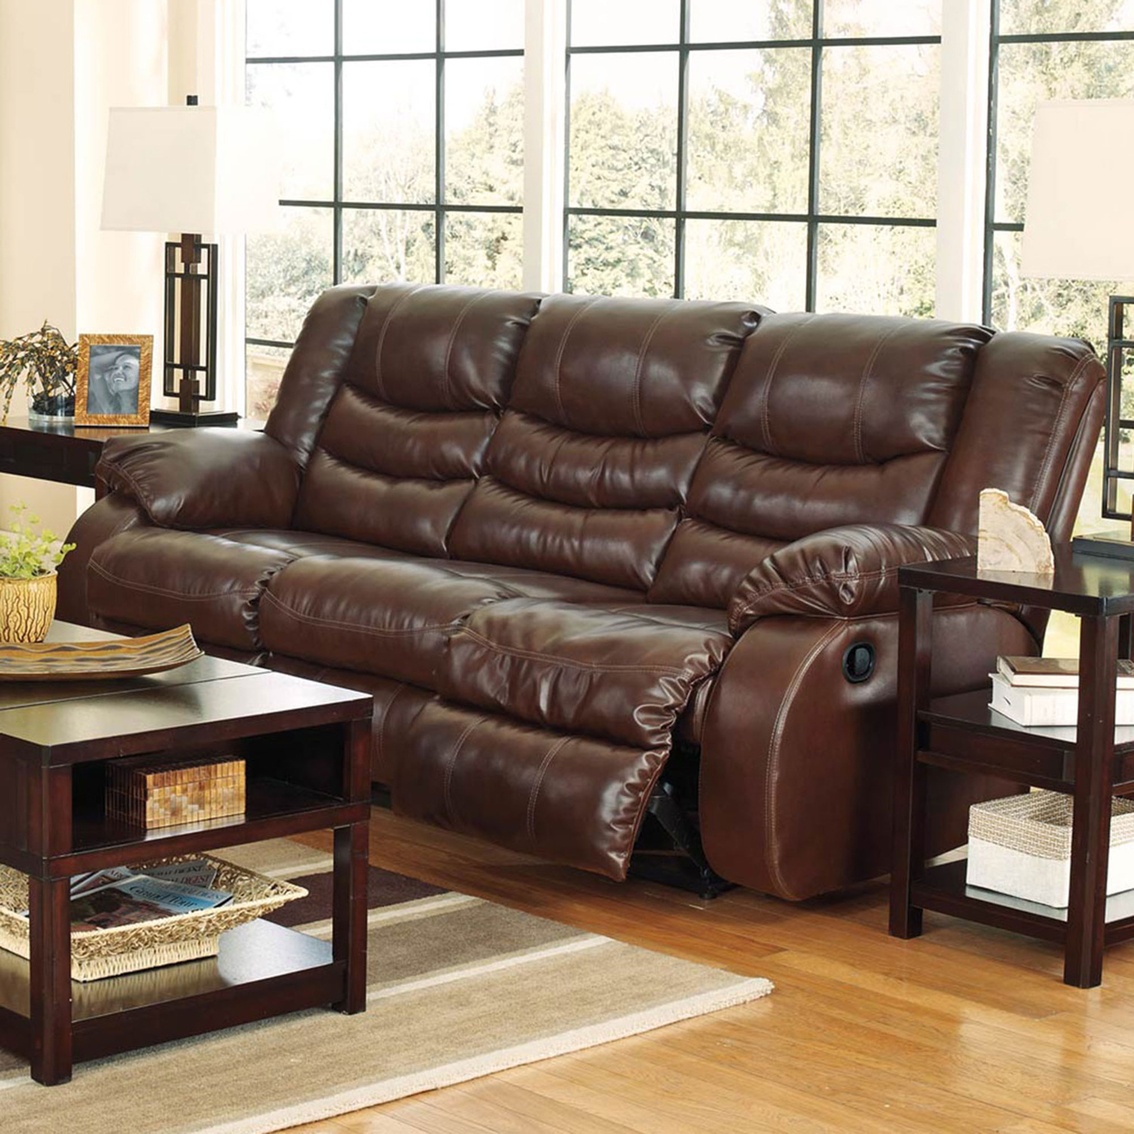 Ashley linebacker reclining sofa sofas couches home for Hometown furniture exchange